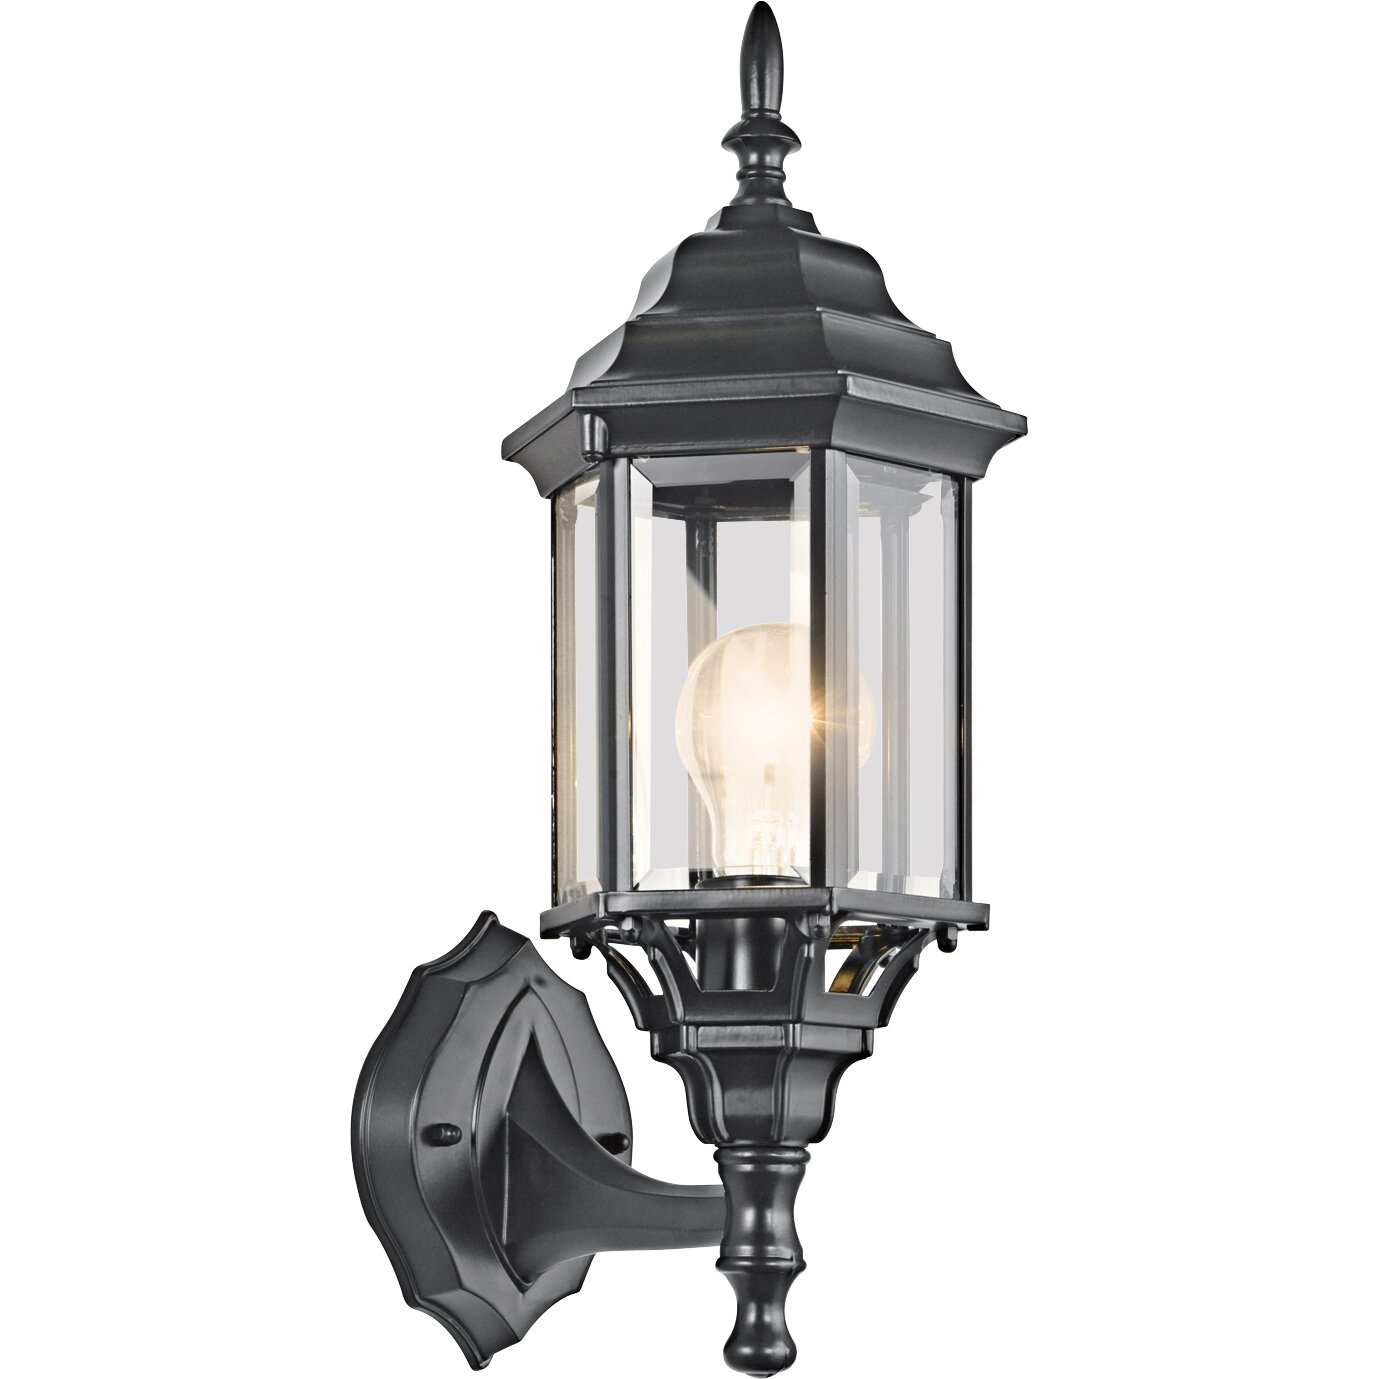 Kichler Chesapeake 1 Light Outdoor Wall Lantern Reviews Wayfair